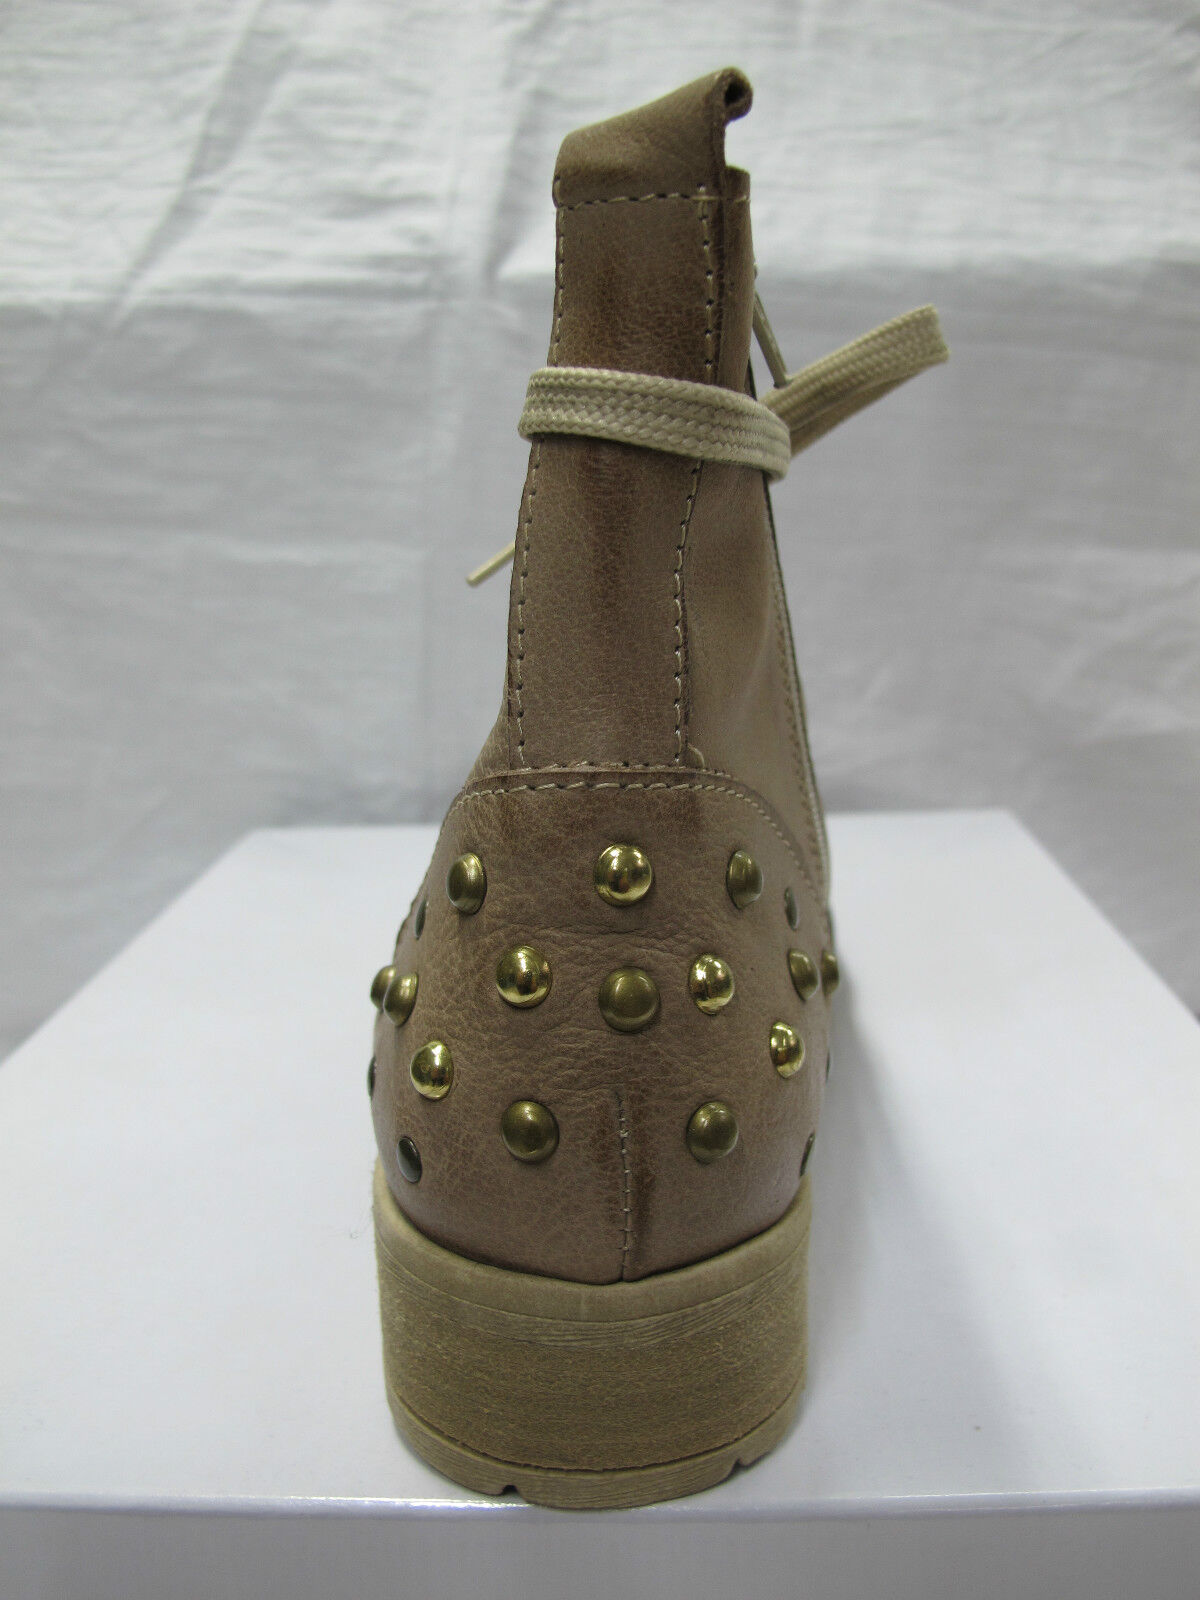 OSVALDO ROSSI Knöchelschuhe Frau Sommer art.DALLAS 37 Farbe taupe taupe taupe n.37 2014 ec3aa3